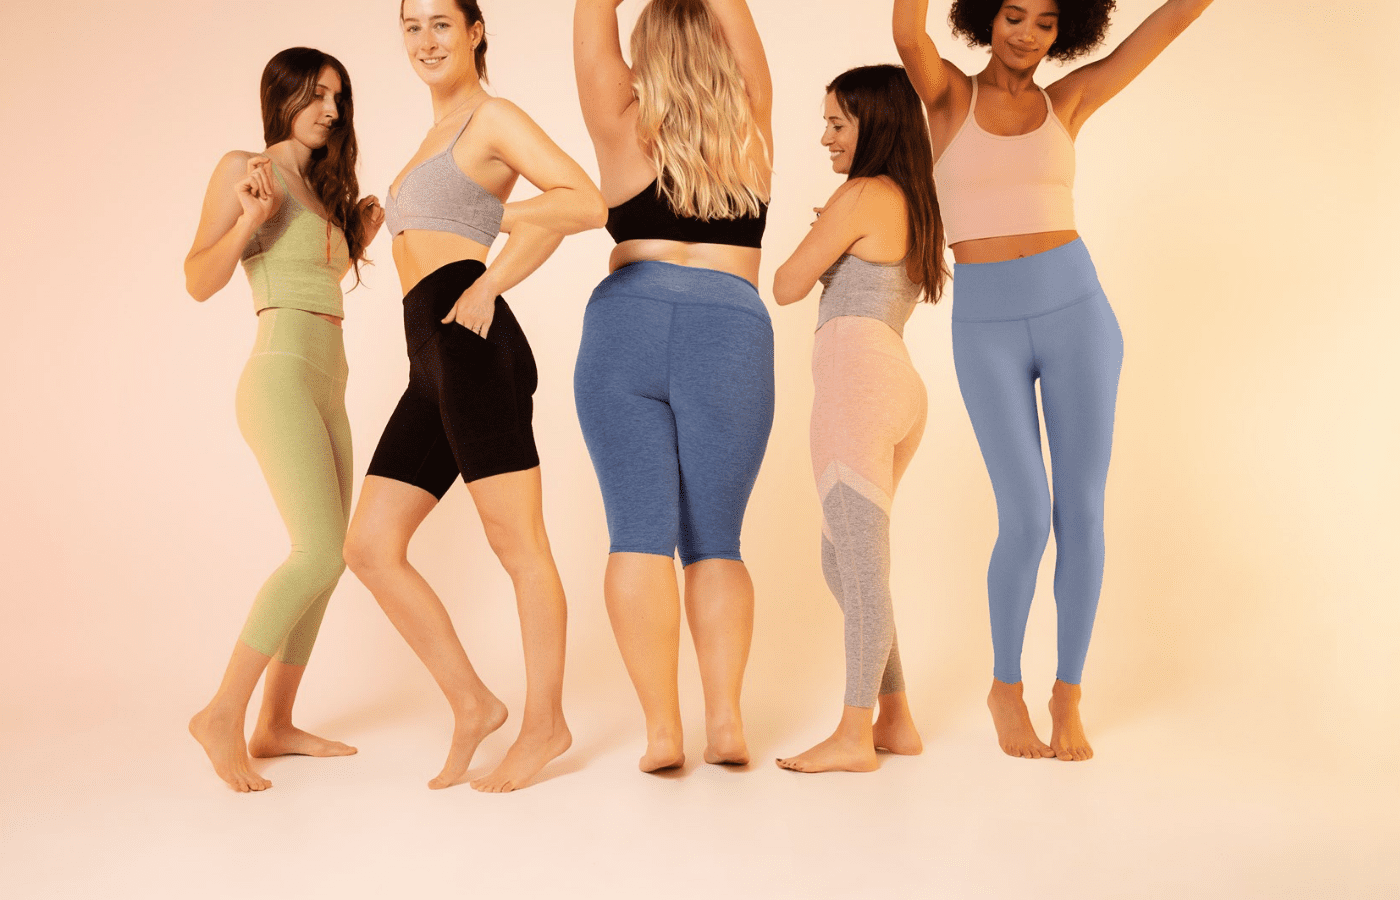 Time for a sweatathon: find excellent athletic wear and yoga clothes in Hong Kong